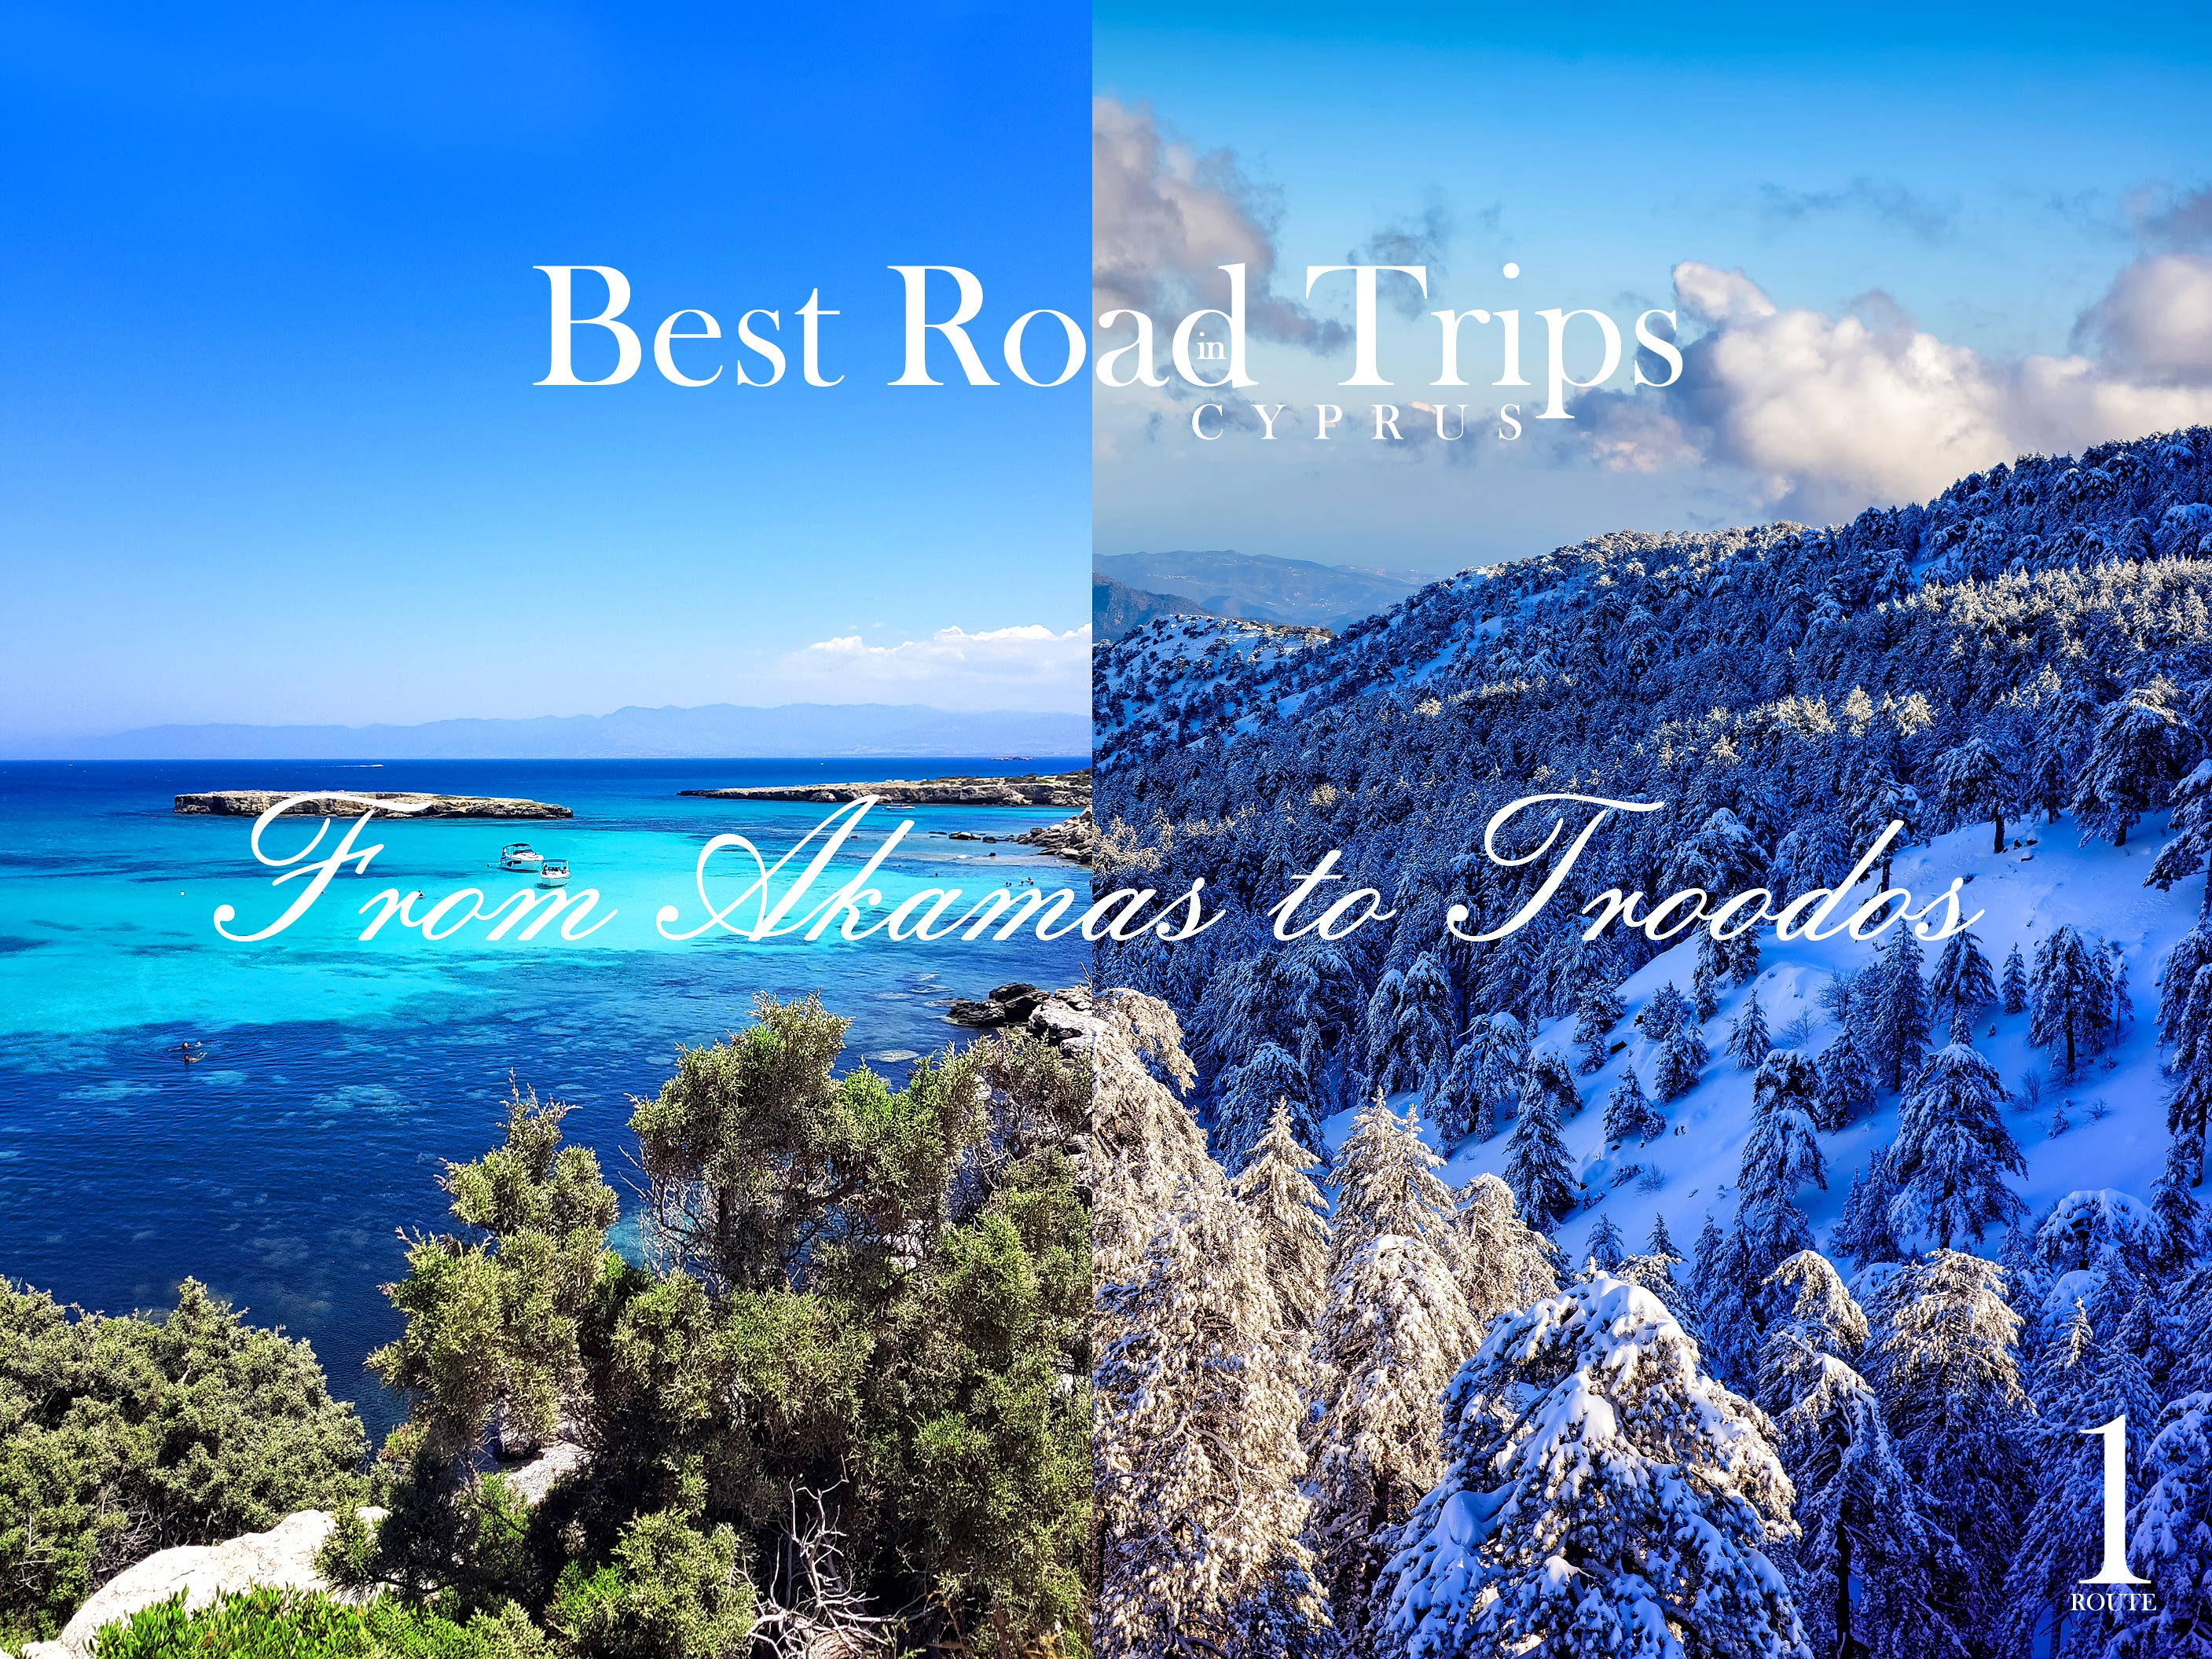 BEST ROAD TRIPS IN CYPRUS 1